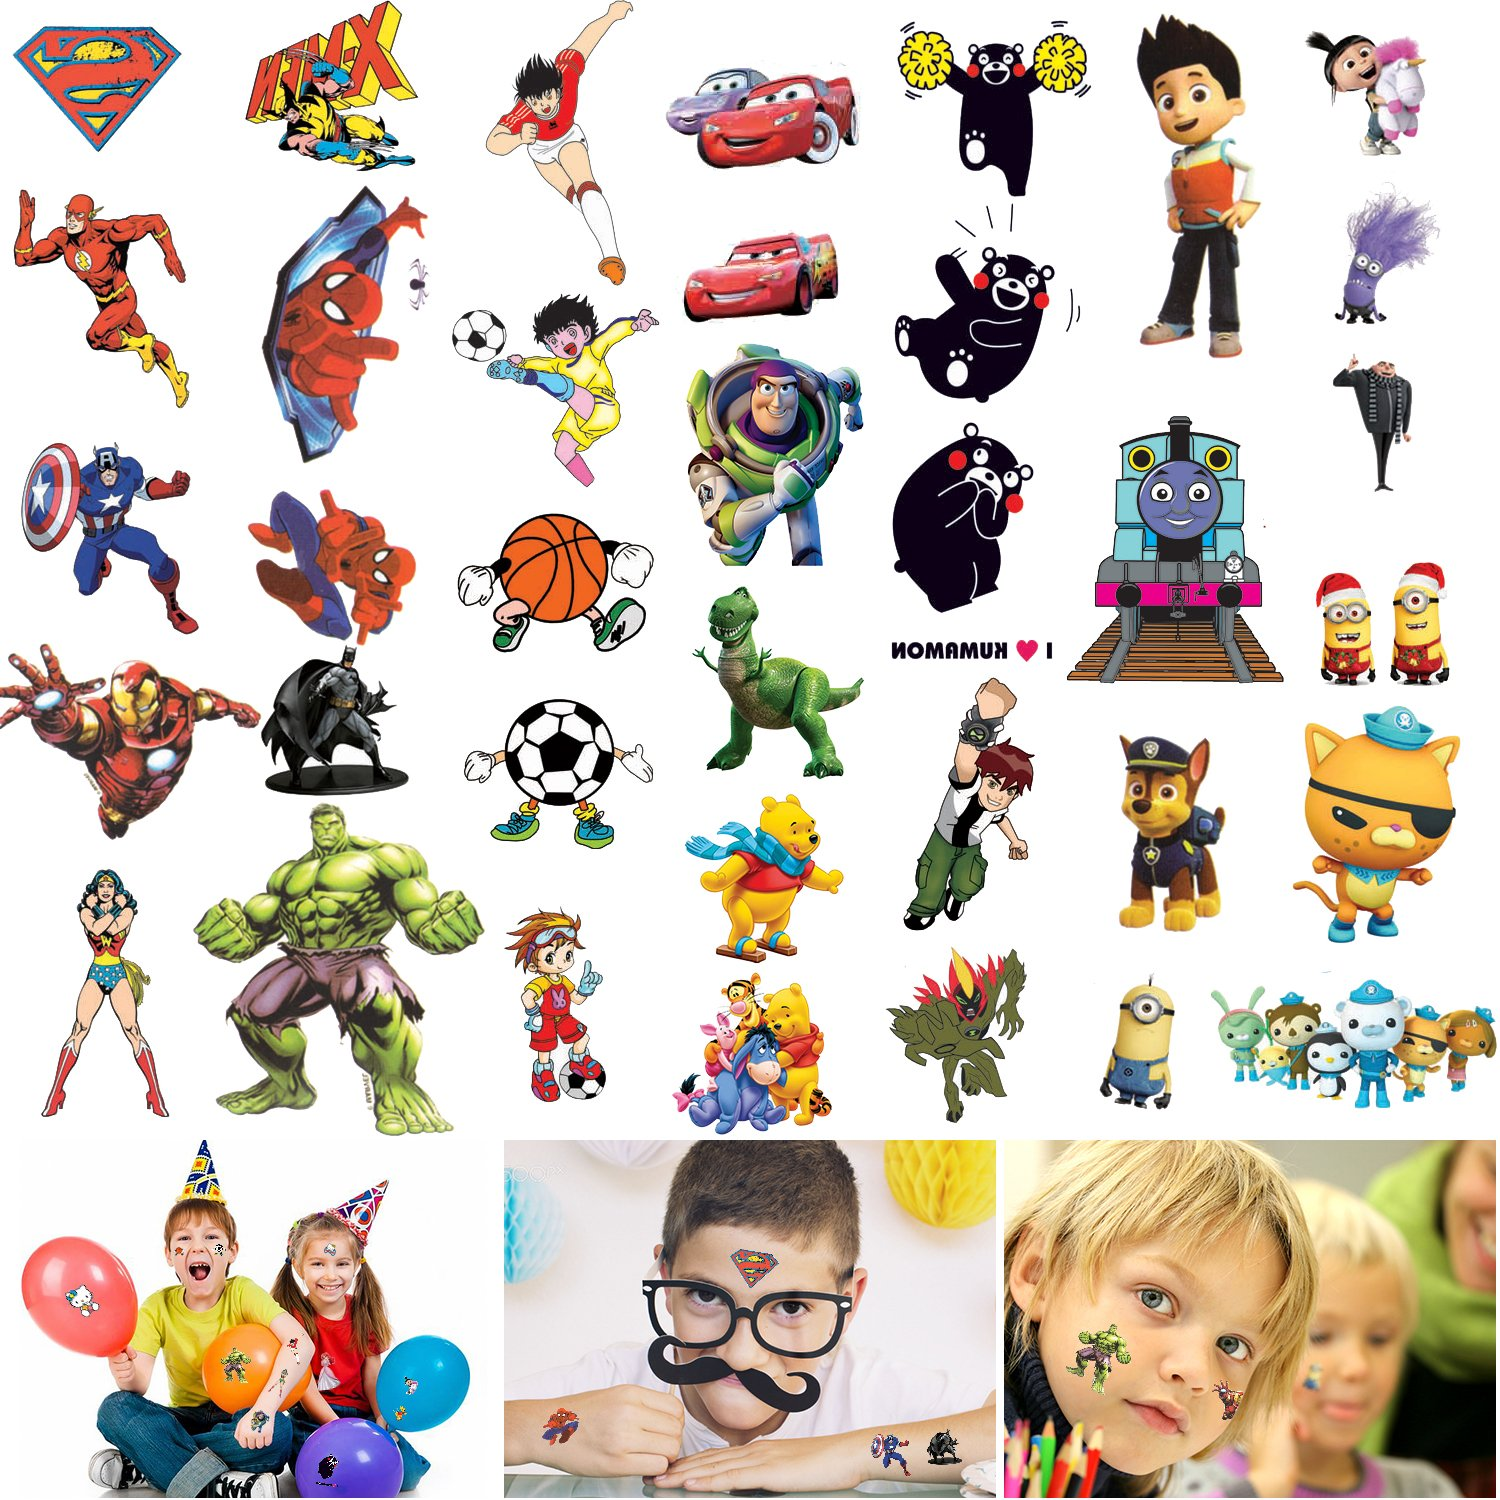 Temporary Tattoos for Kids Boys - 300 Tattoos on 18 Sheets, Super Hero Spiderman Batman Cars Thomas etc,Best for Party Favors Birthday Party Supplies School Fun Gifts by Sheechung